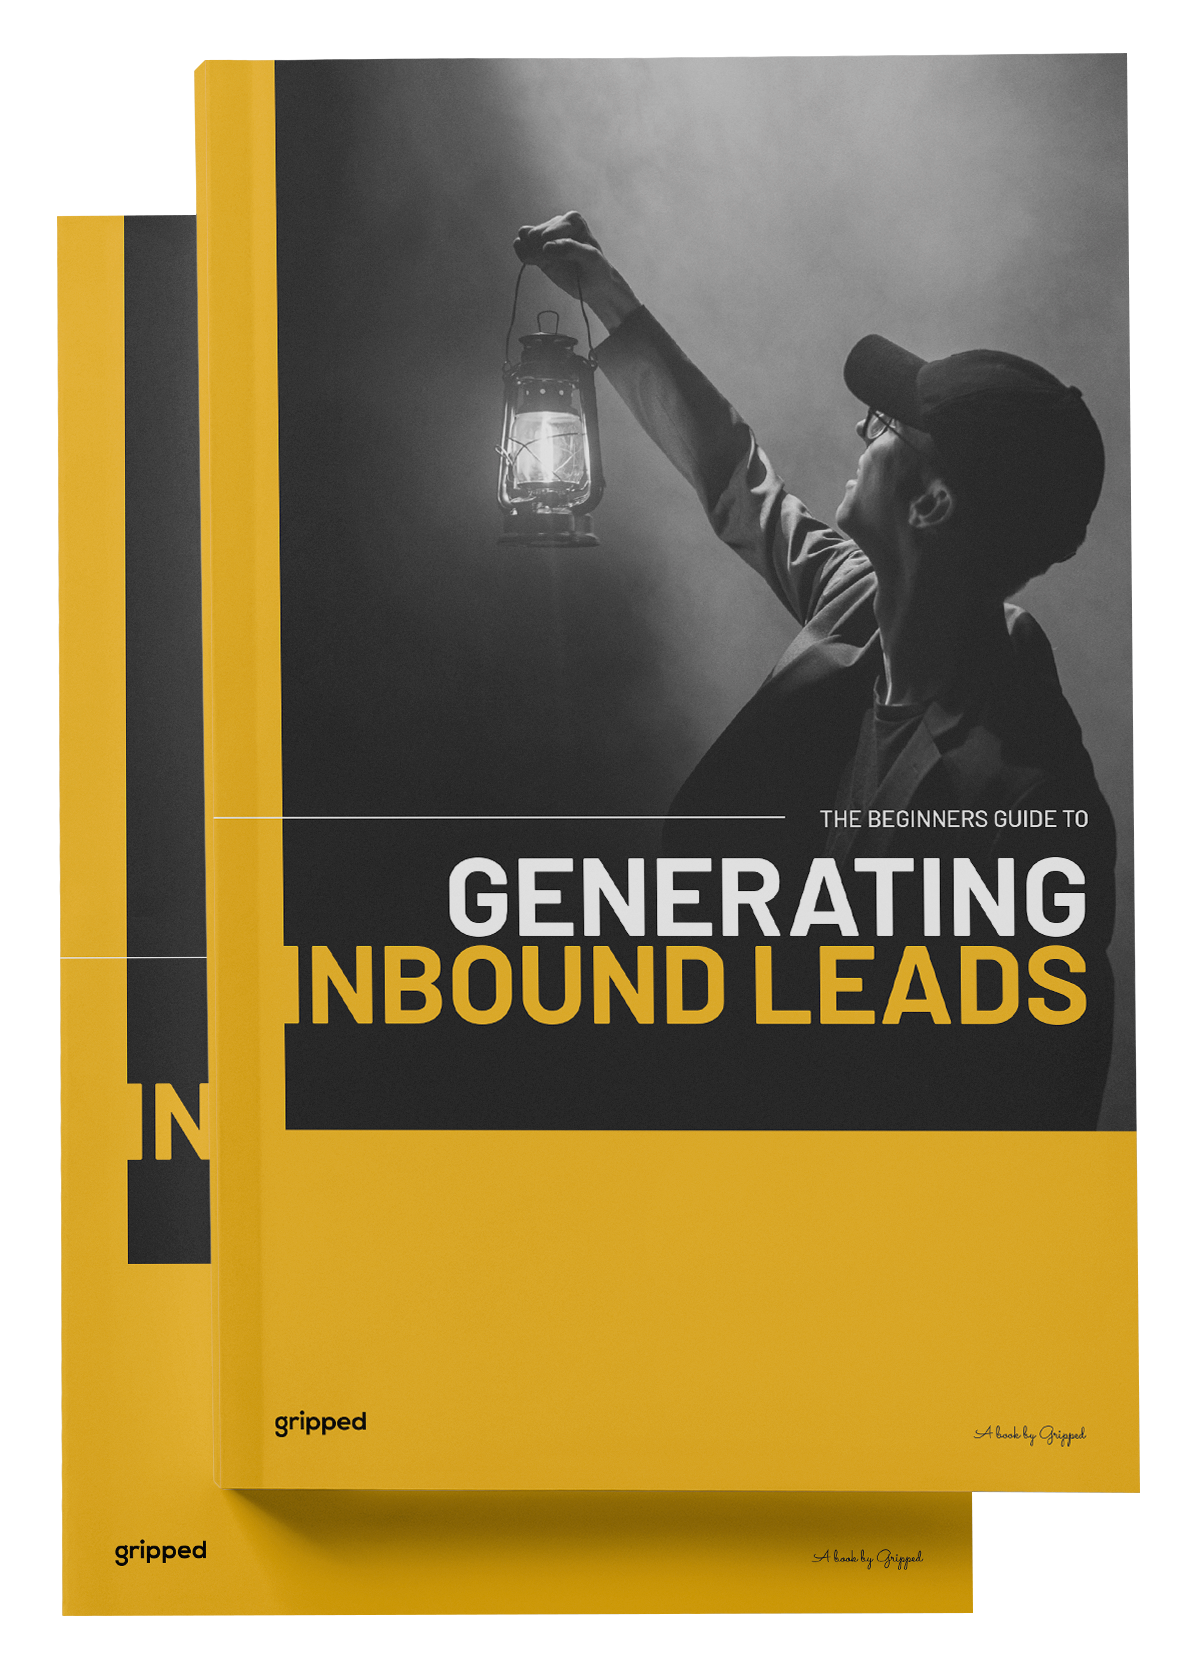 The-Beginners-Guide-to-Generating-Inbound-Leads